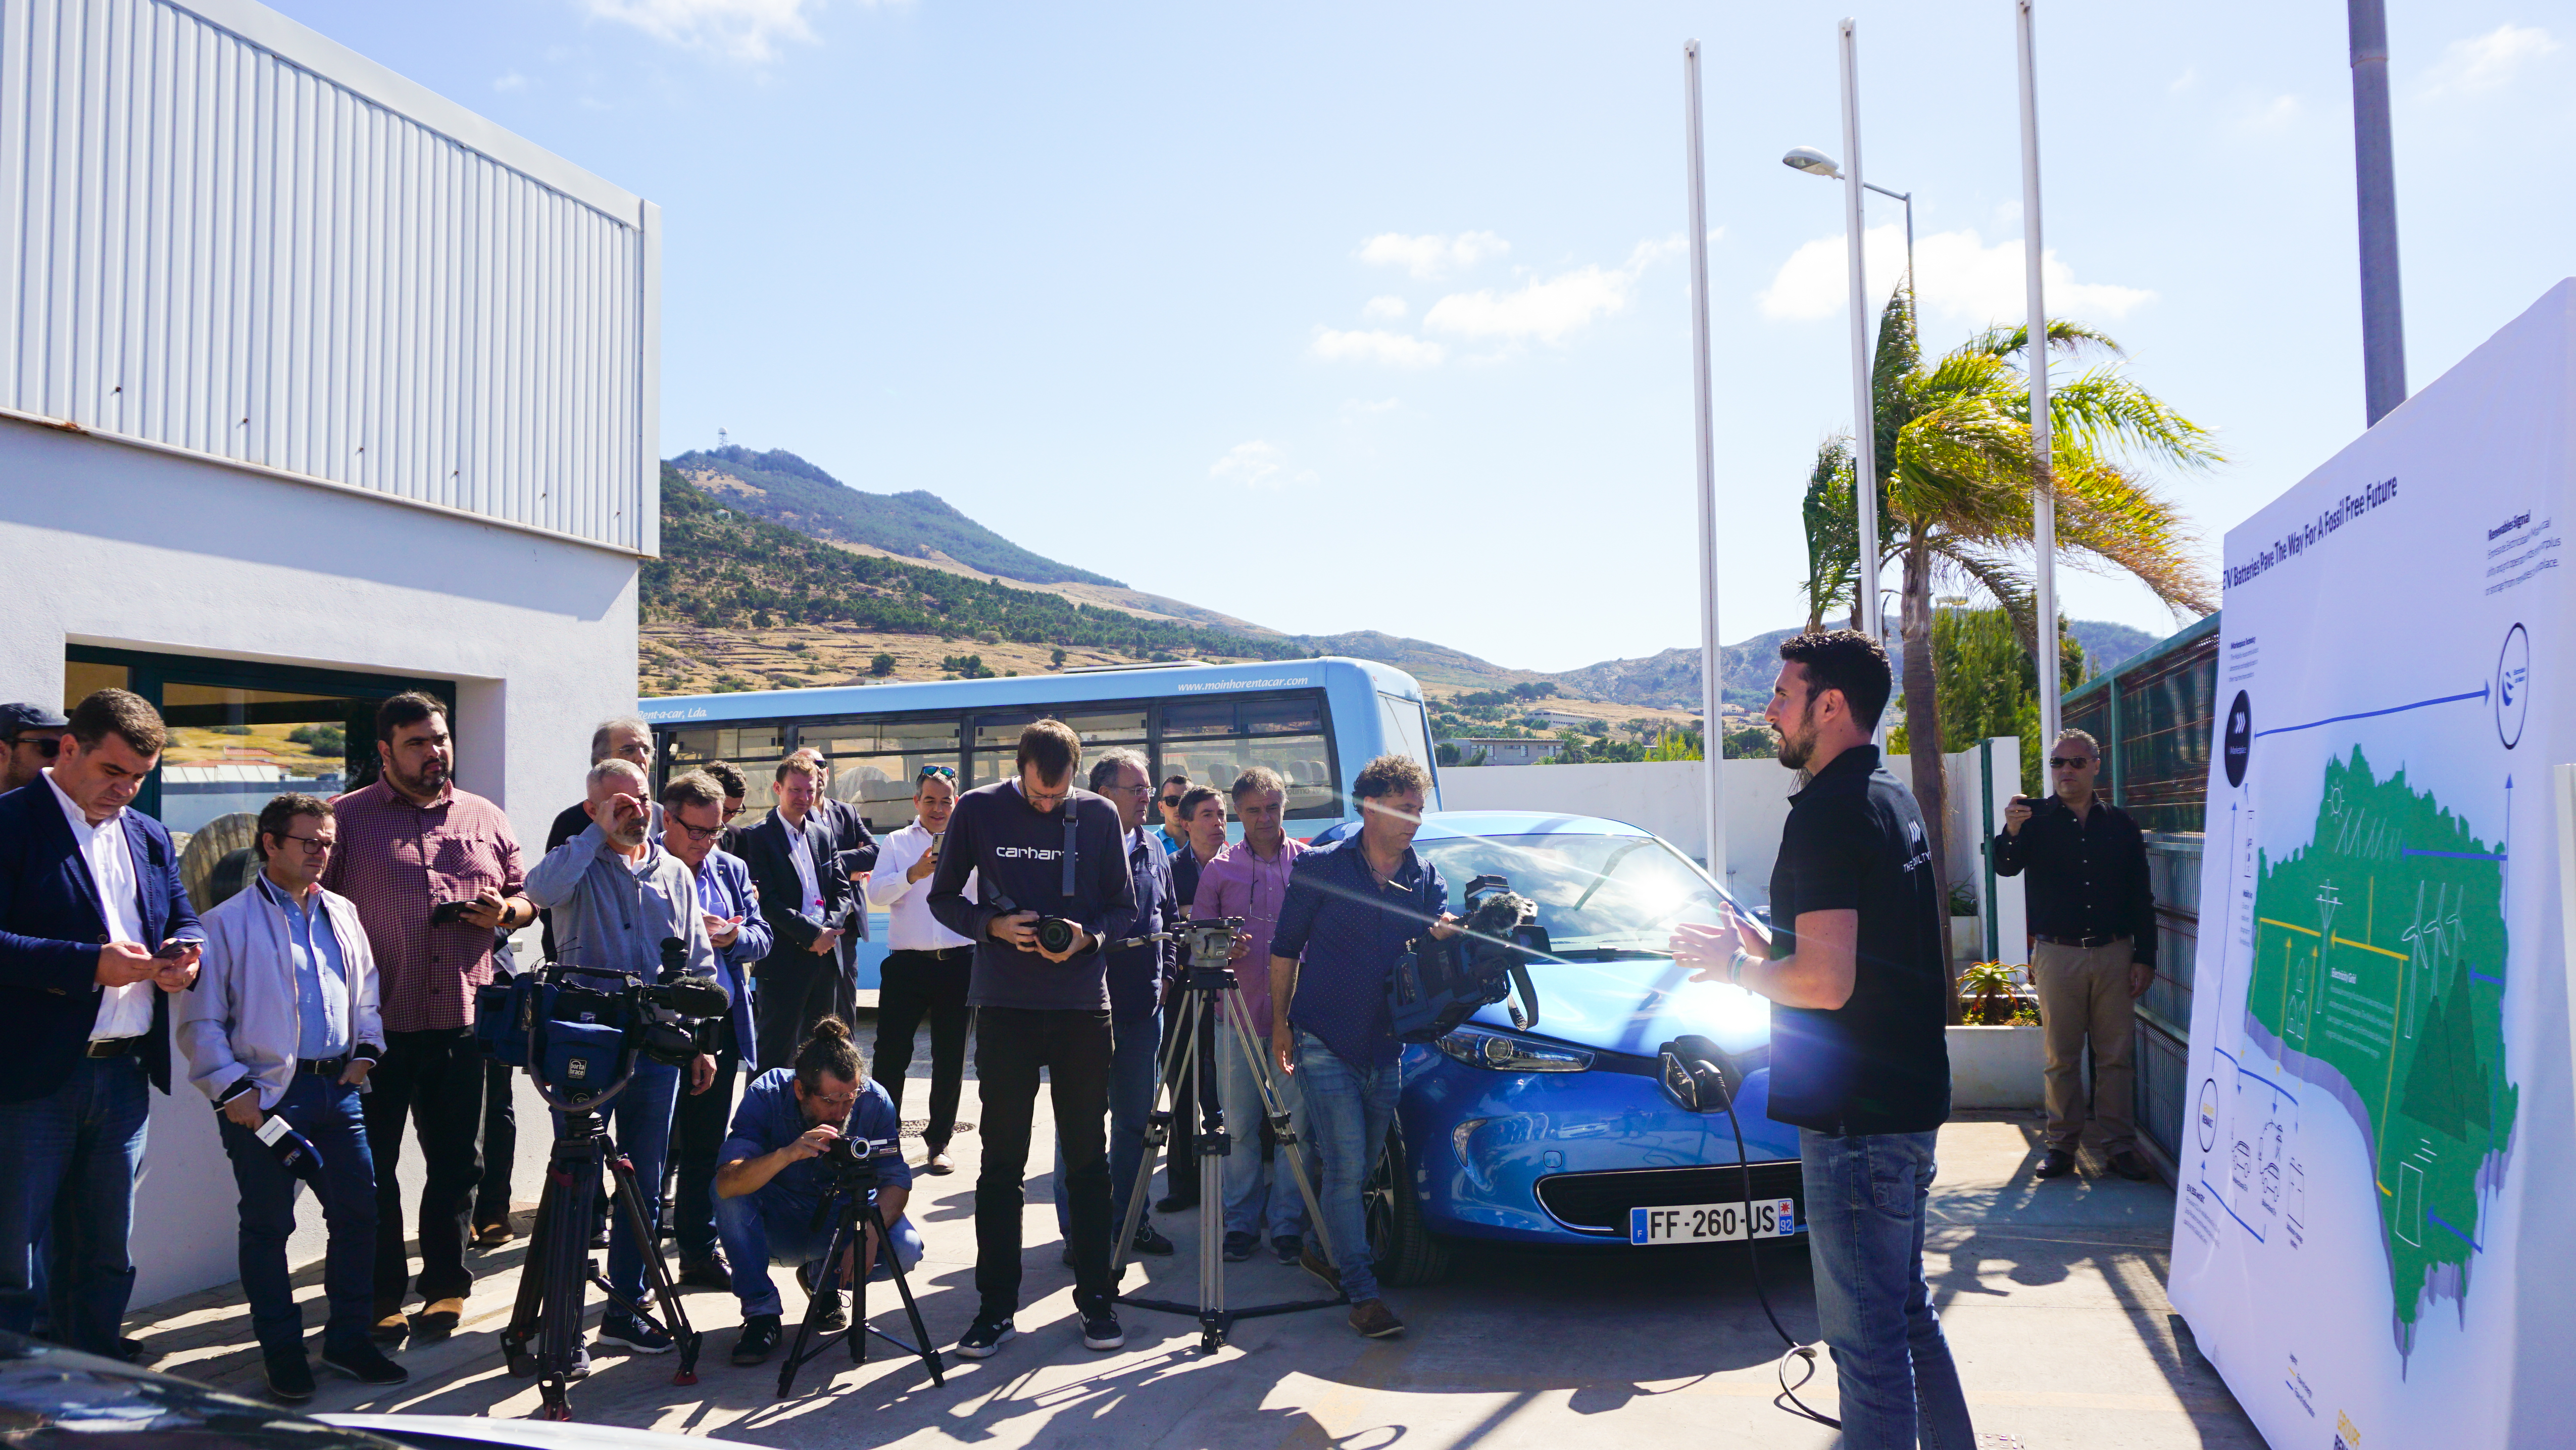 André Duarte giving a press statement about the V2G project on Porto Santo